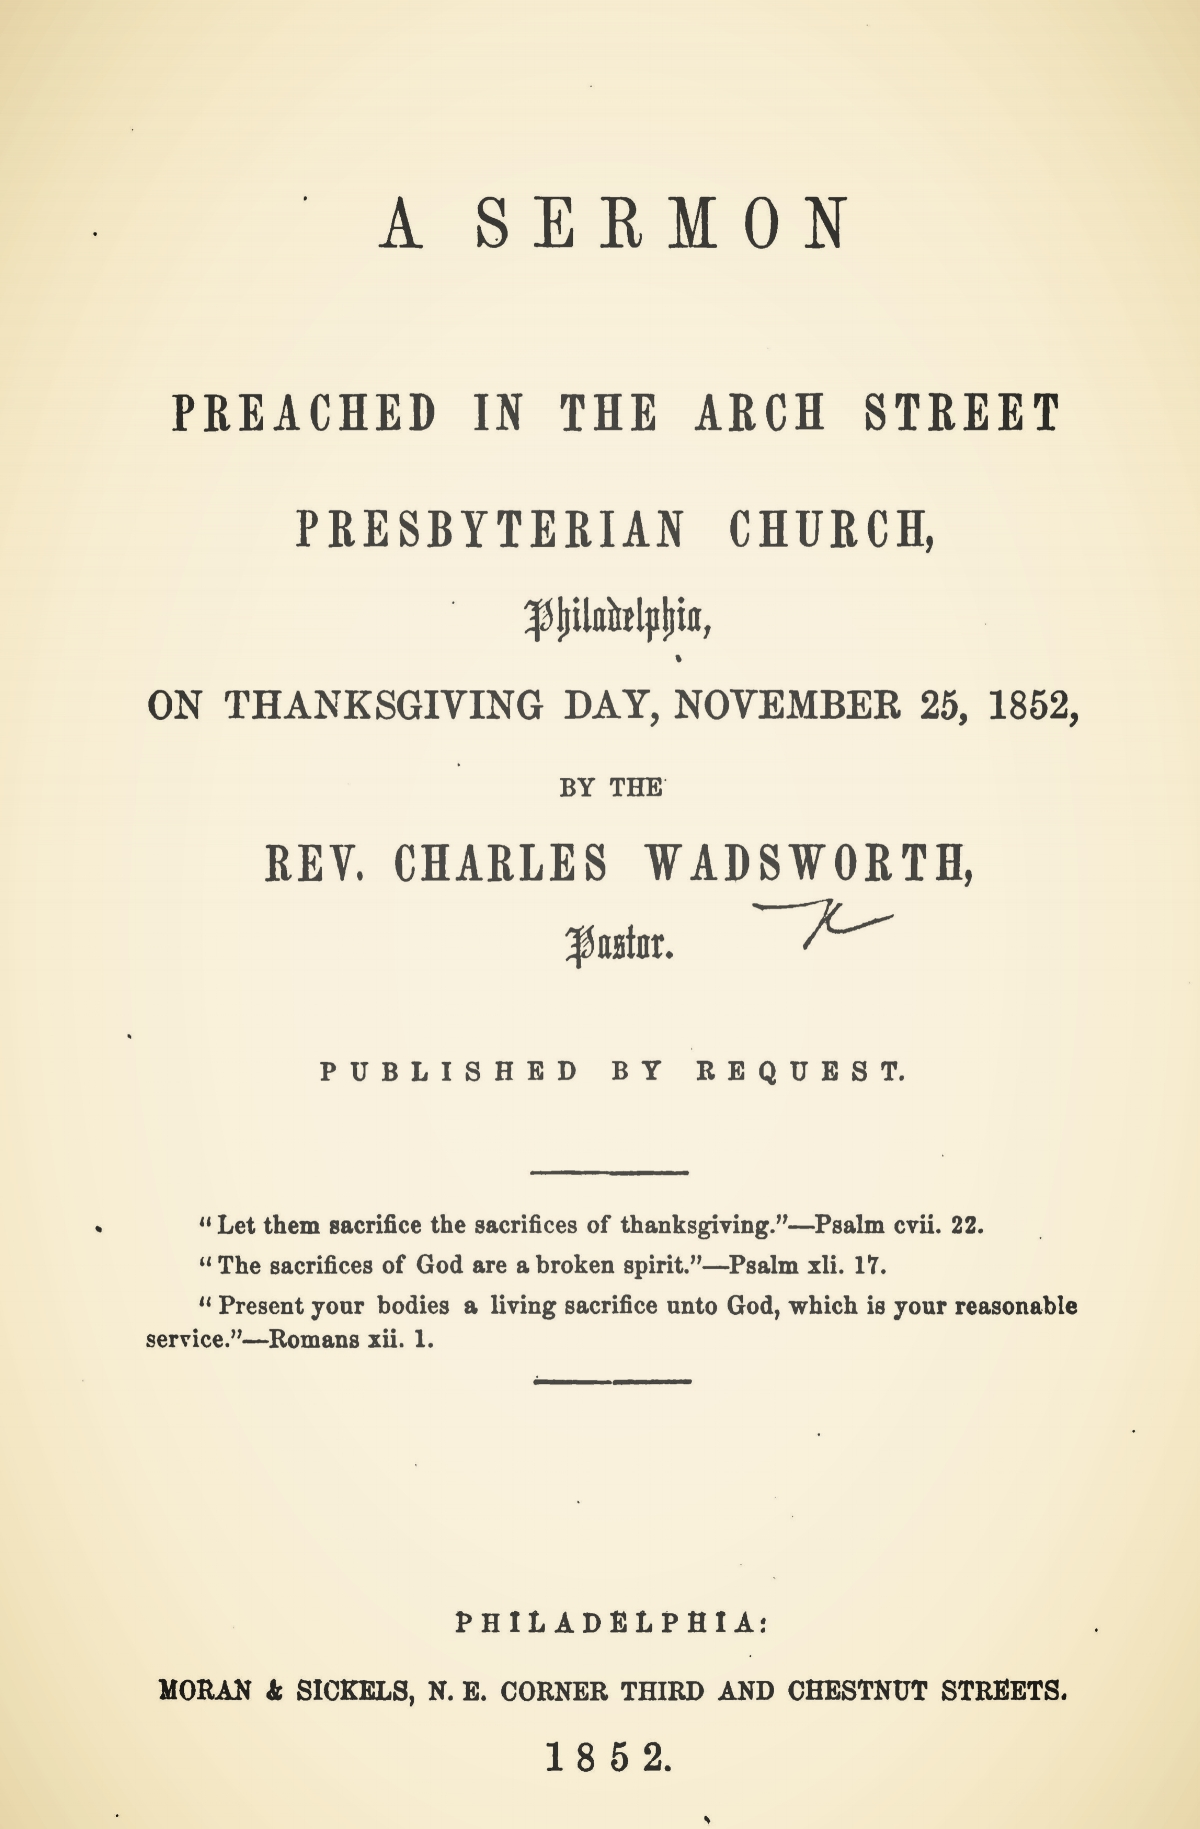 Wadsworth, Charles, A Sermon Preached in the Arch Street Presbyterian Church Nov. 25, 1852 Title Page.jpg